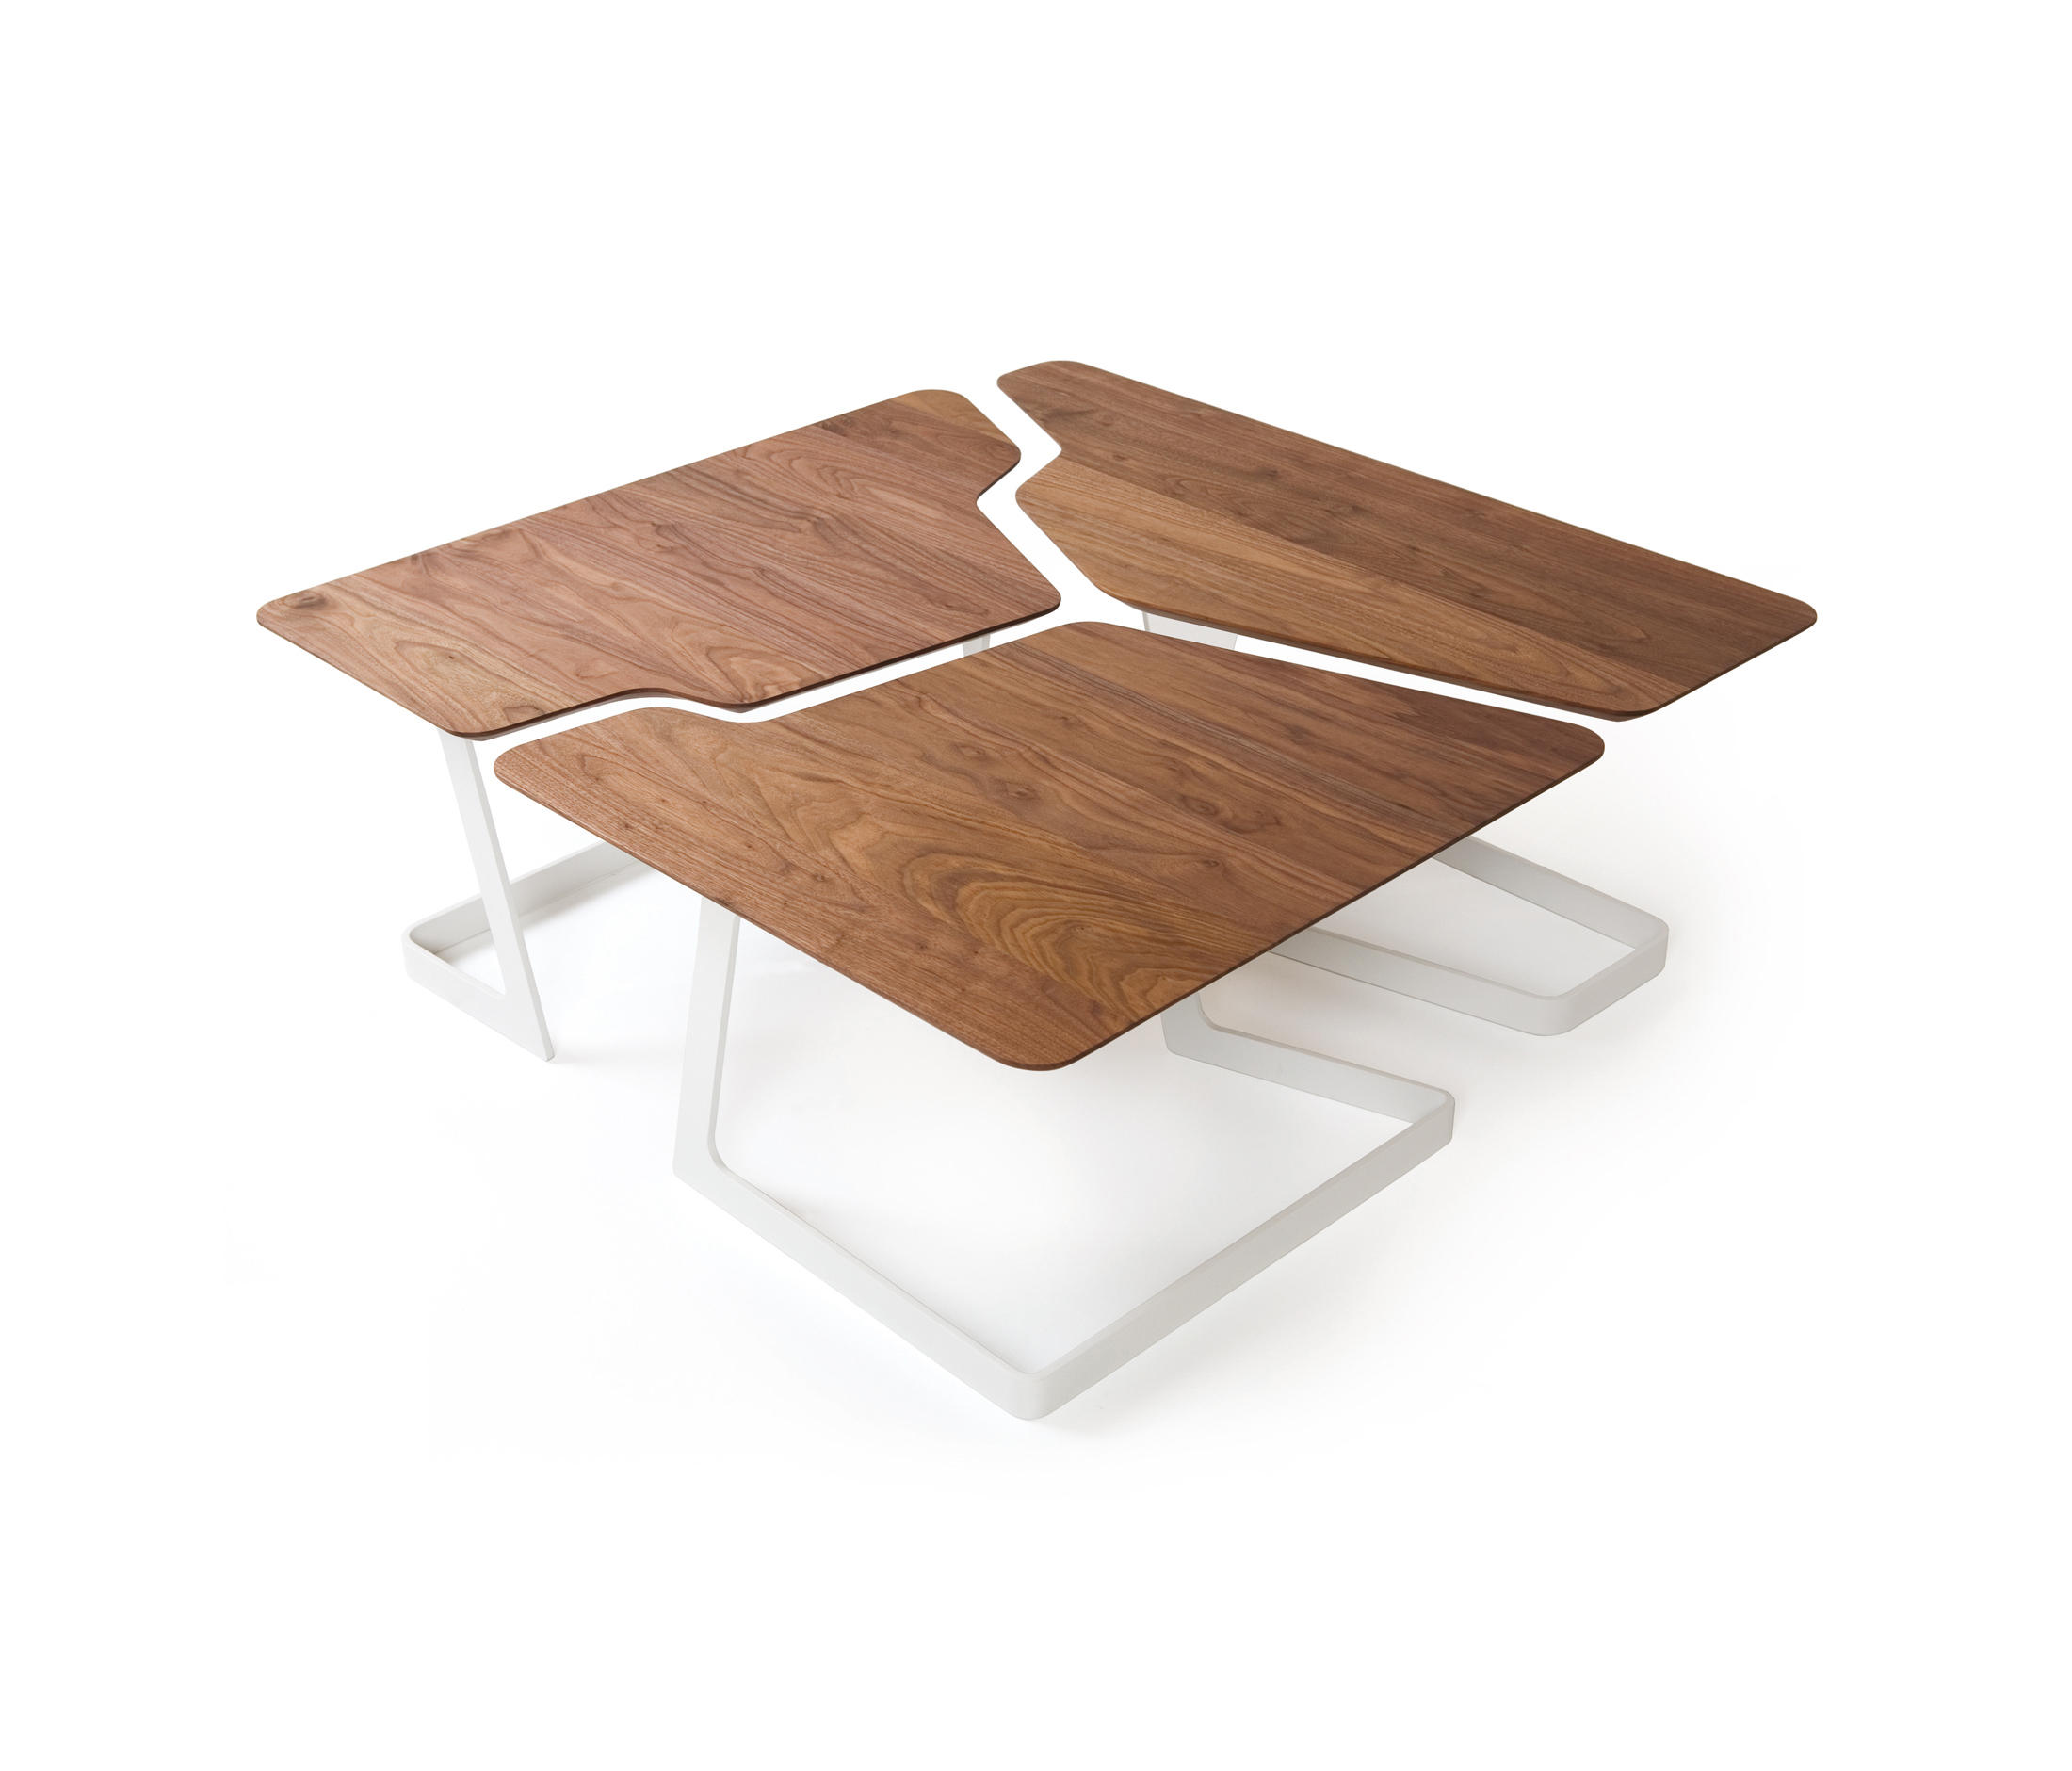 FRACTURE COFFEE TABLE Lounge tables from Matthew Hilton